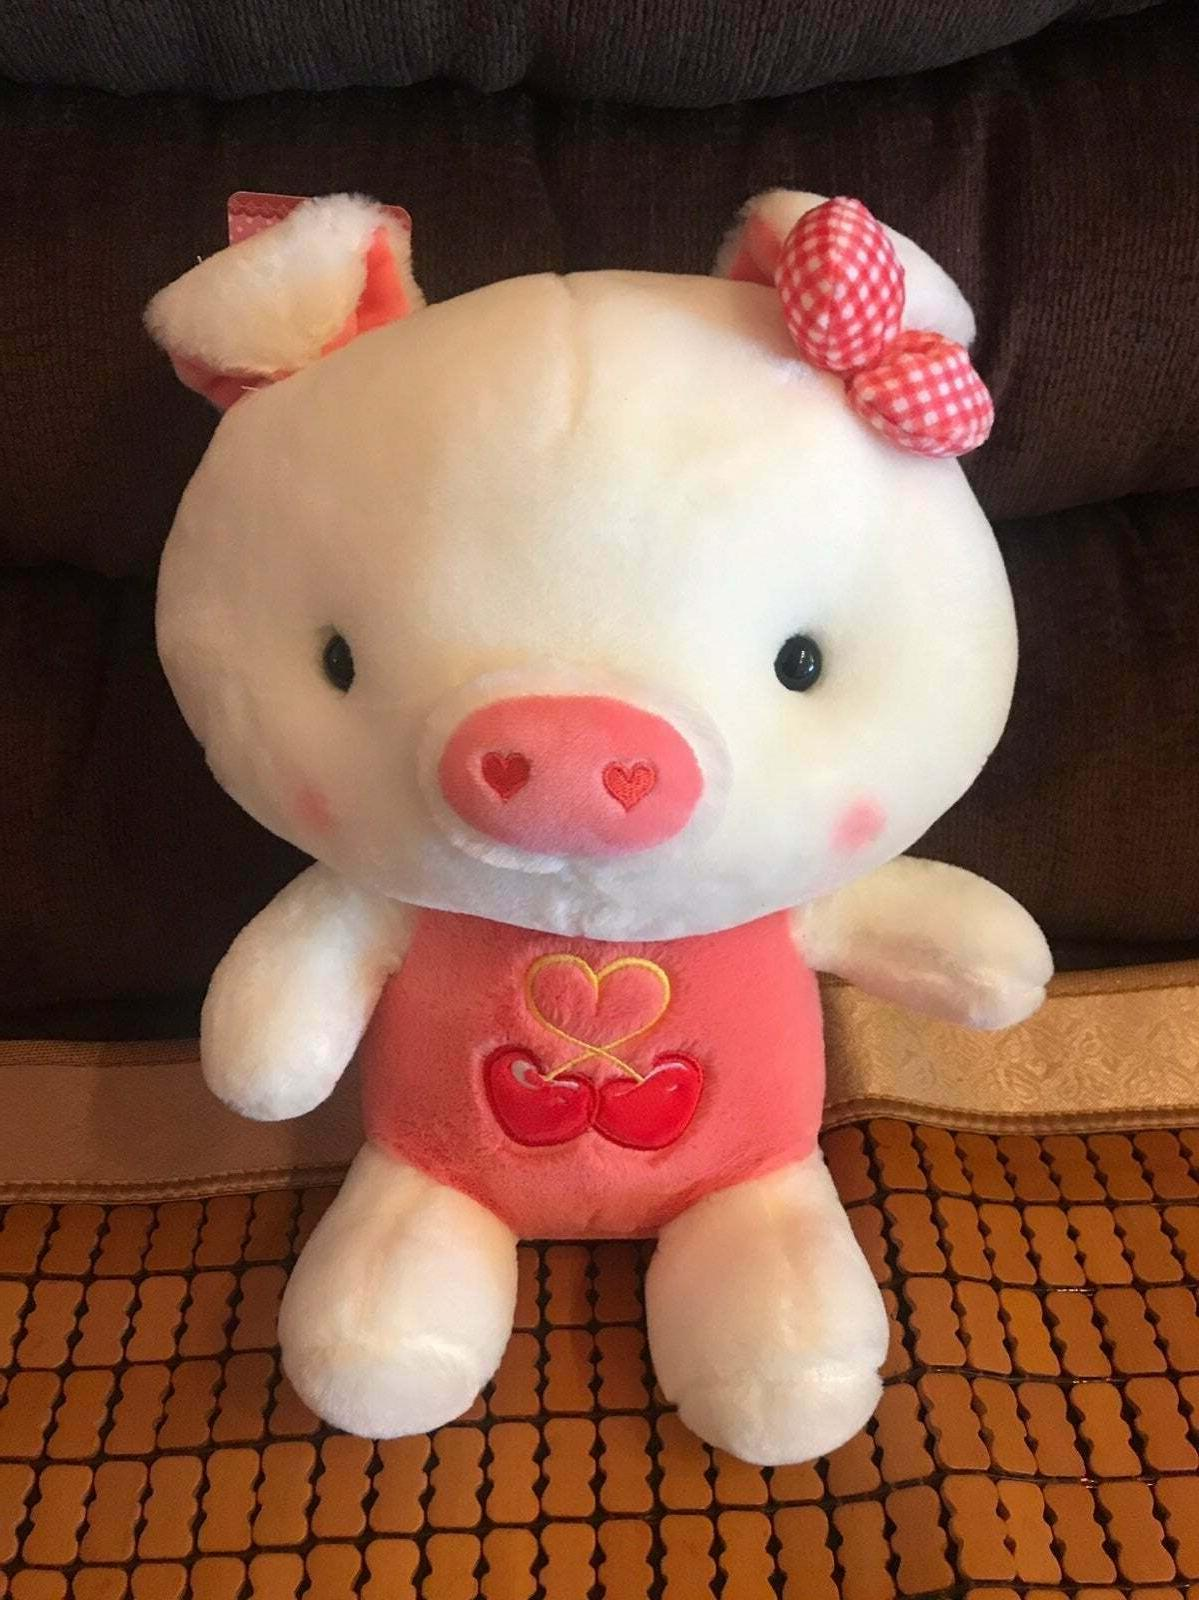 stuffed animals plush cow stuffed toy cute